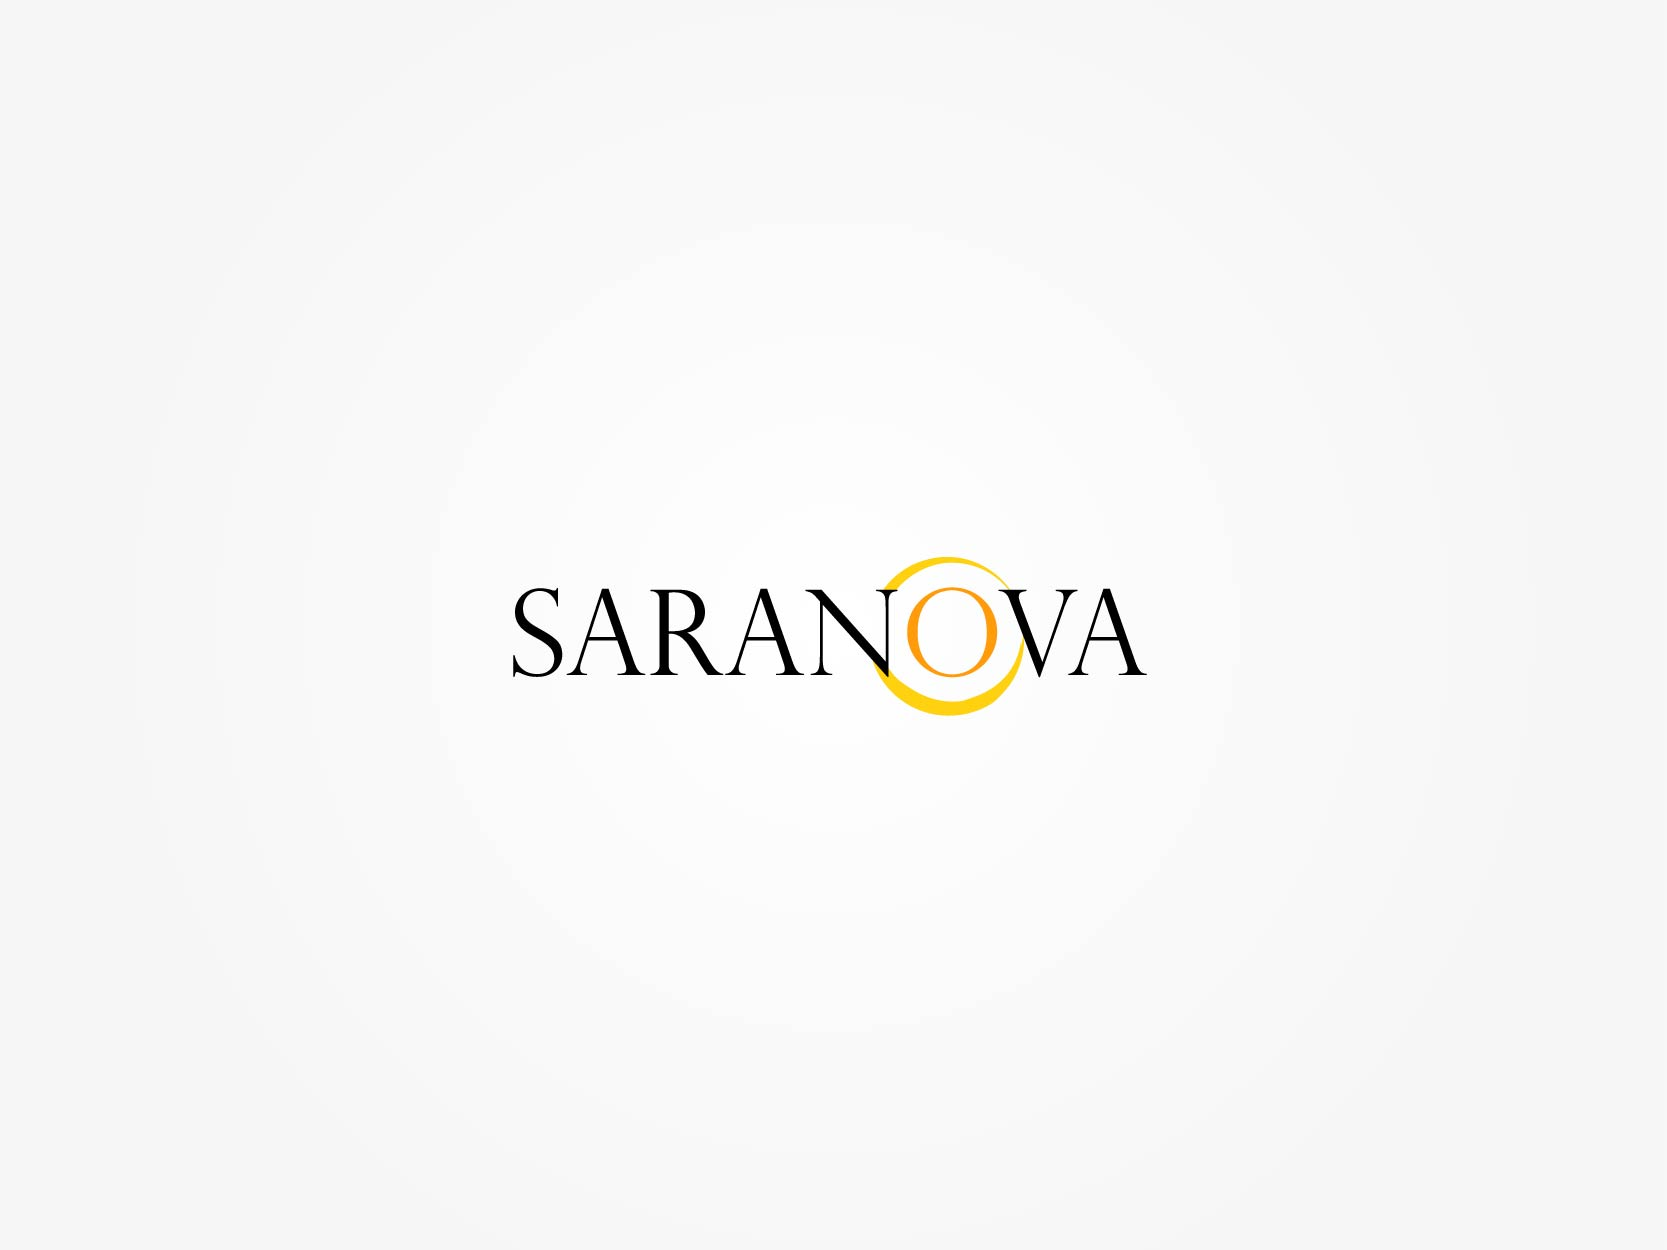 Logo Design by Osi Indra - Entry No. 67 in the Logo Design Contest Artistic Logo Design for Saranova.